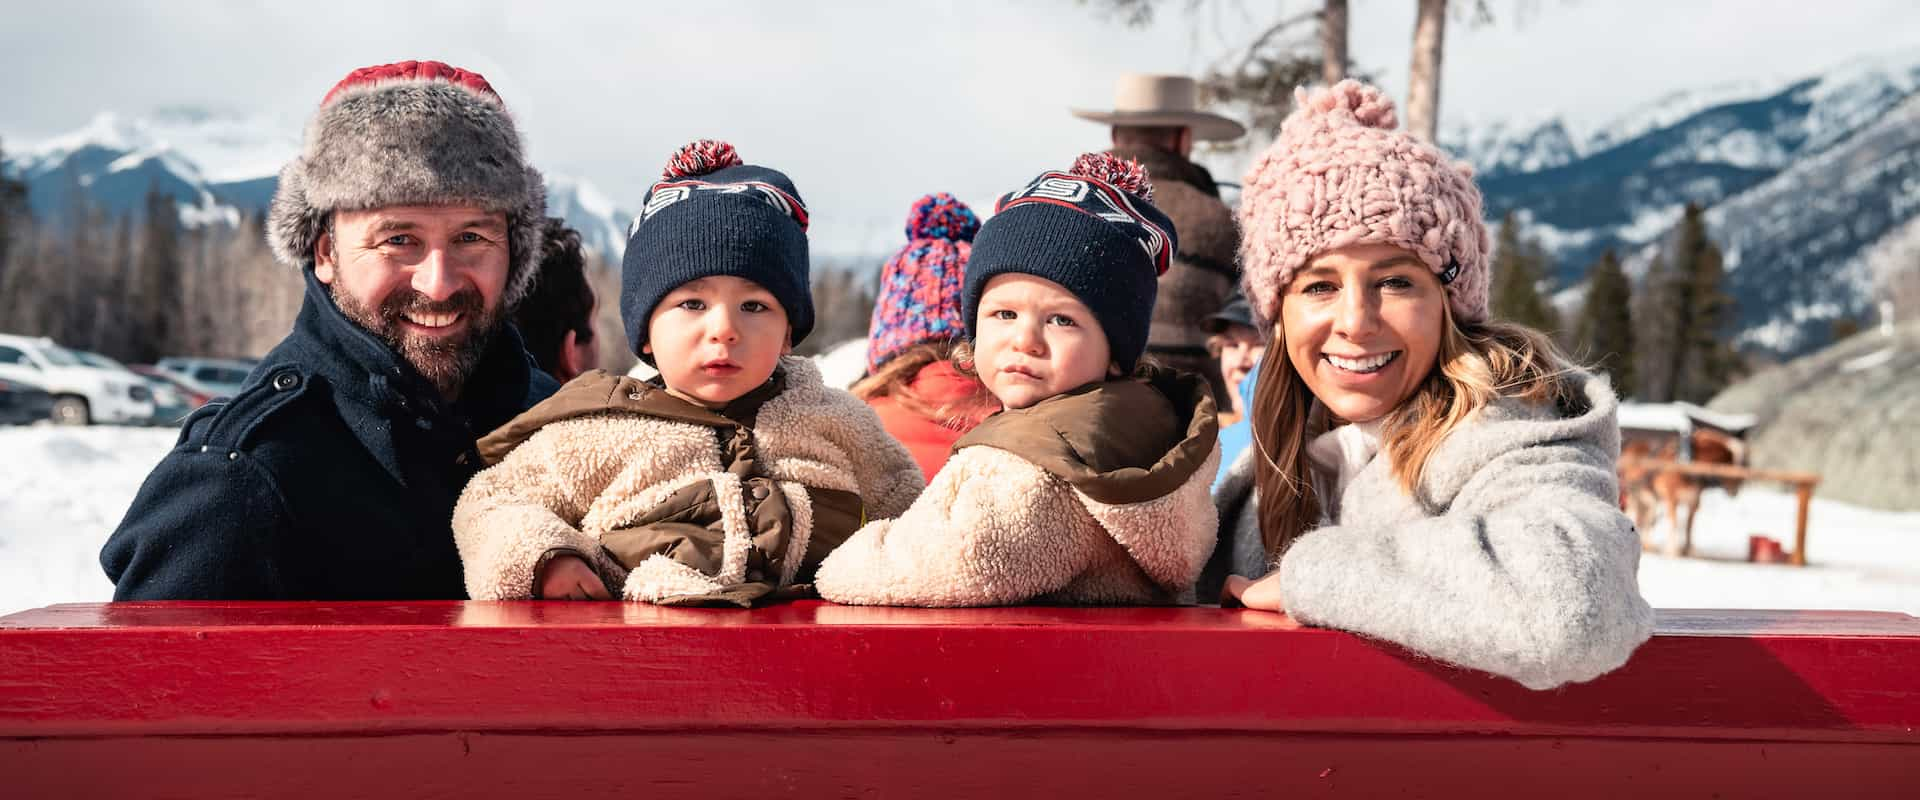 Banff family winter sleigh ride with Banff Trail Riders